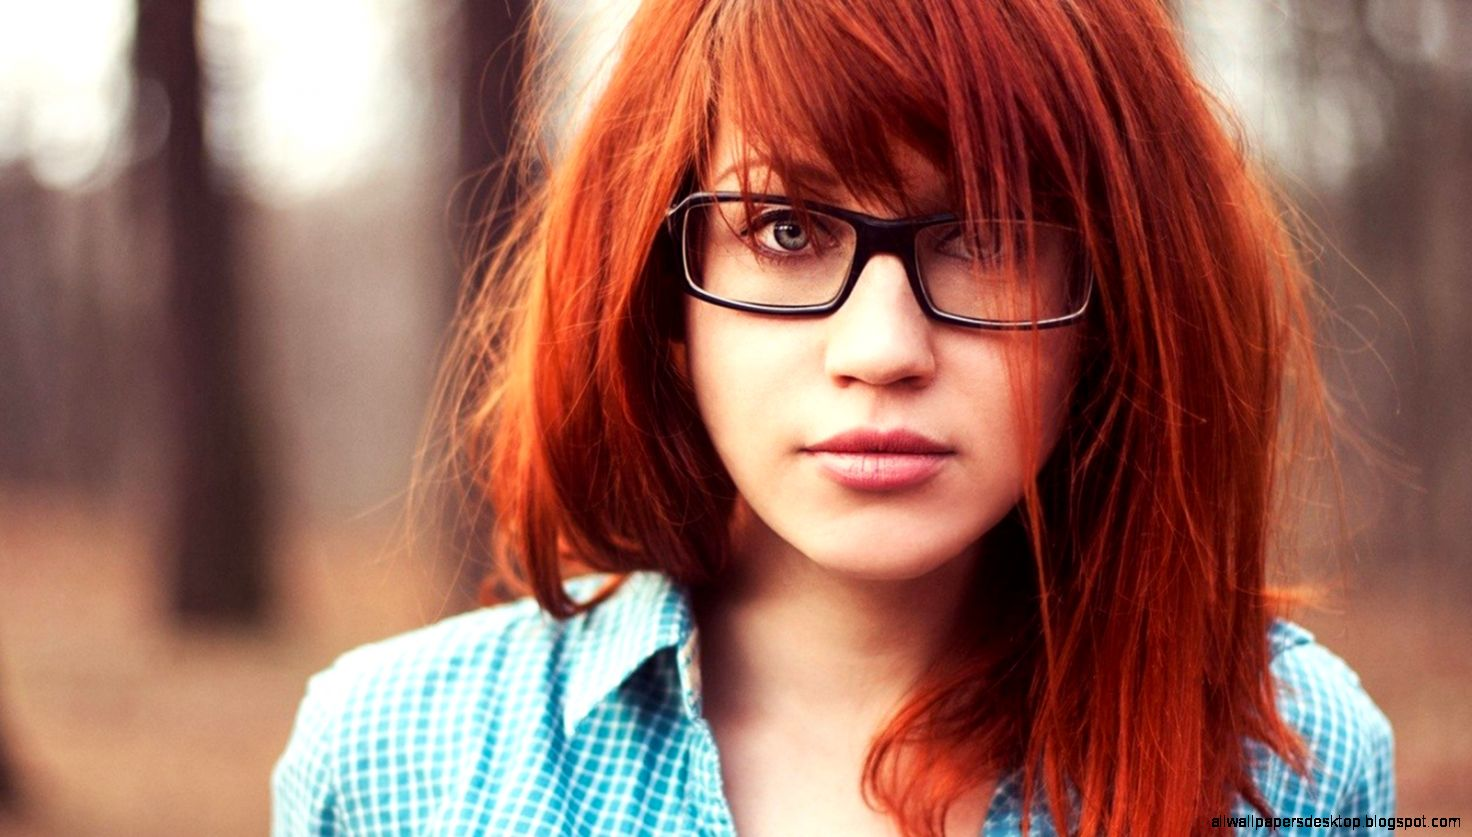 Download Wallpaper 1600x900 Girl Redhead Glasses Autumn Mood